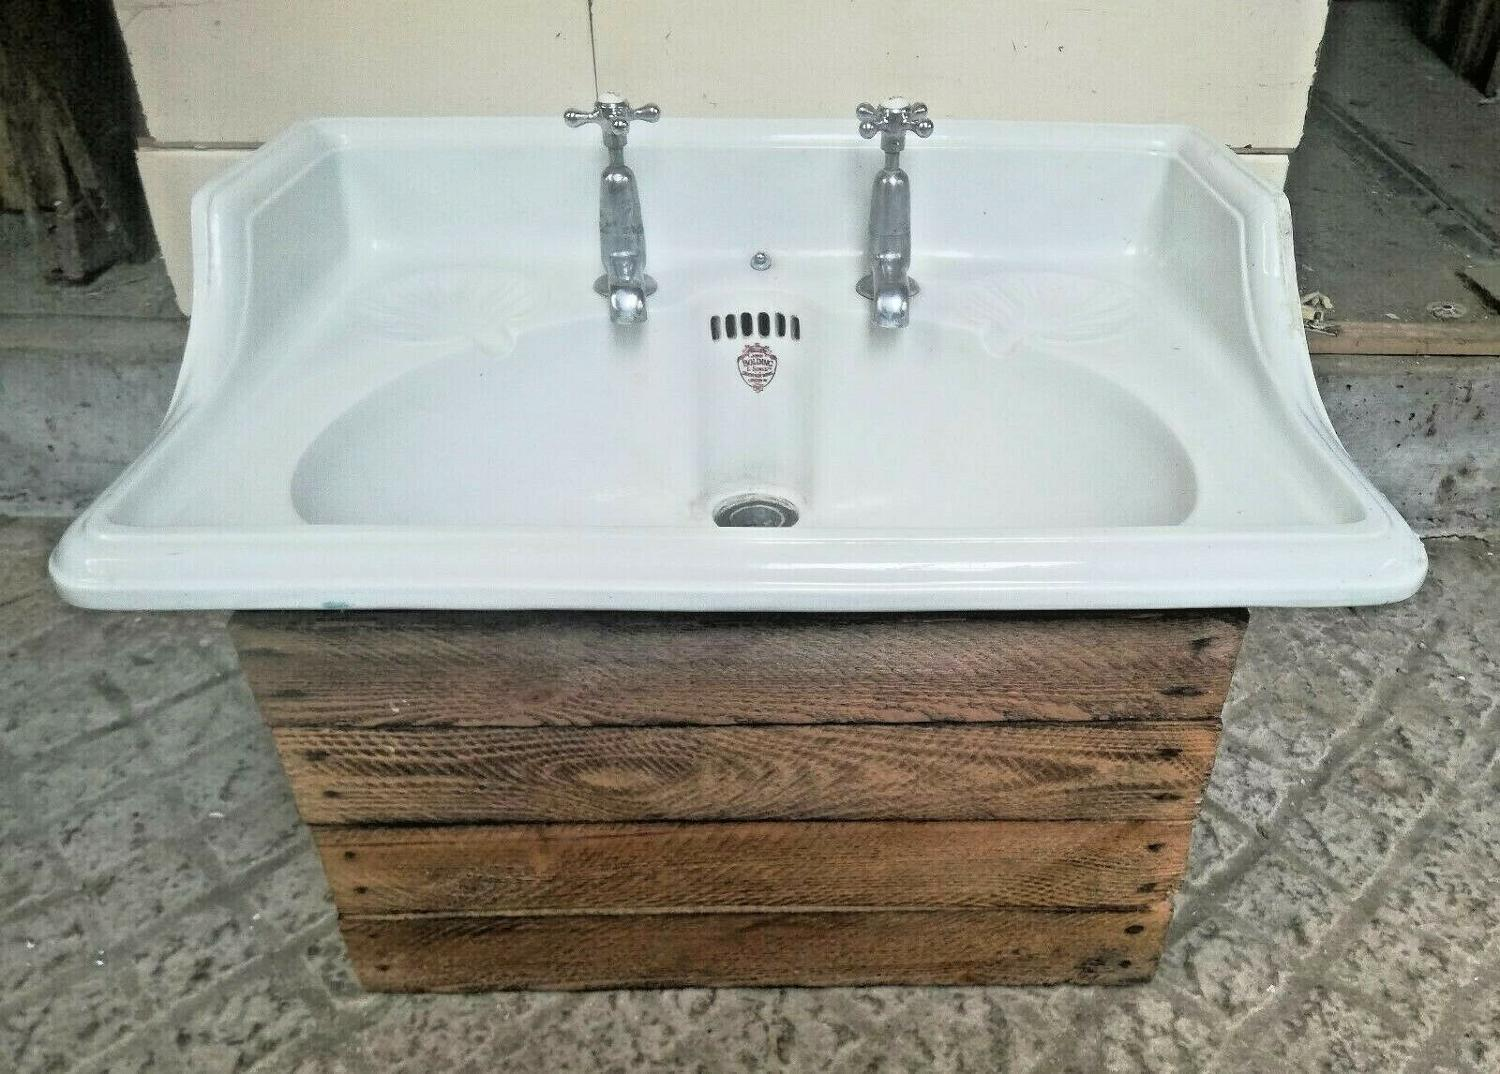 M1300 AN ATTRACTIVE RECLAIMED ANTIQUE EDWARDIAN PORCELAIN BOLDING SINK